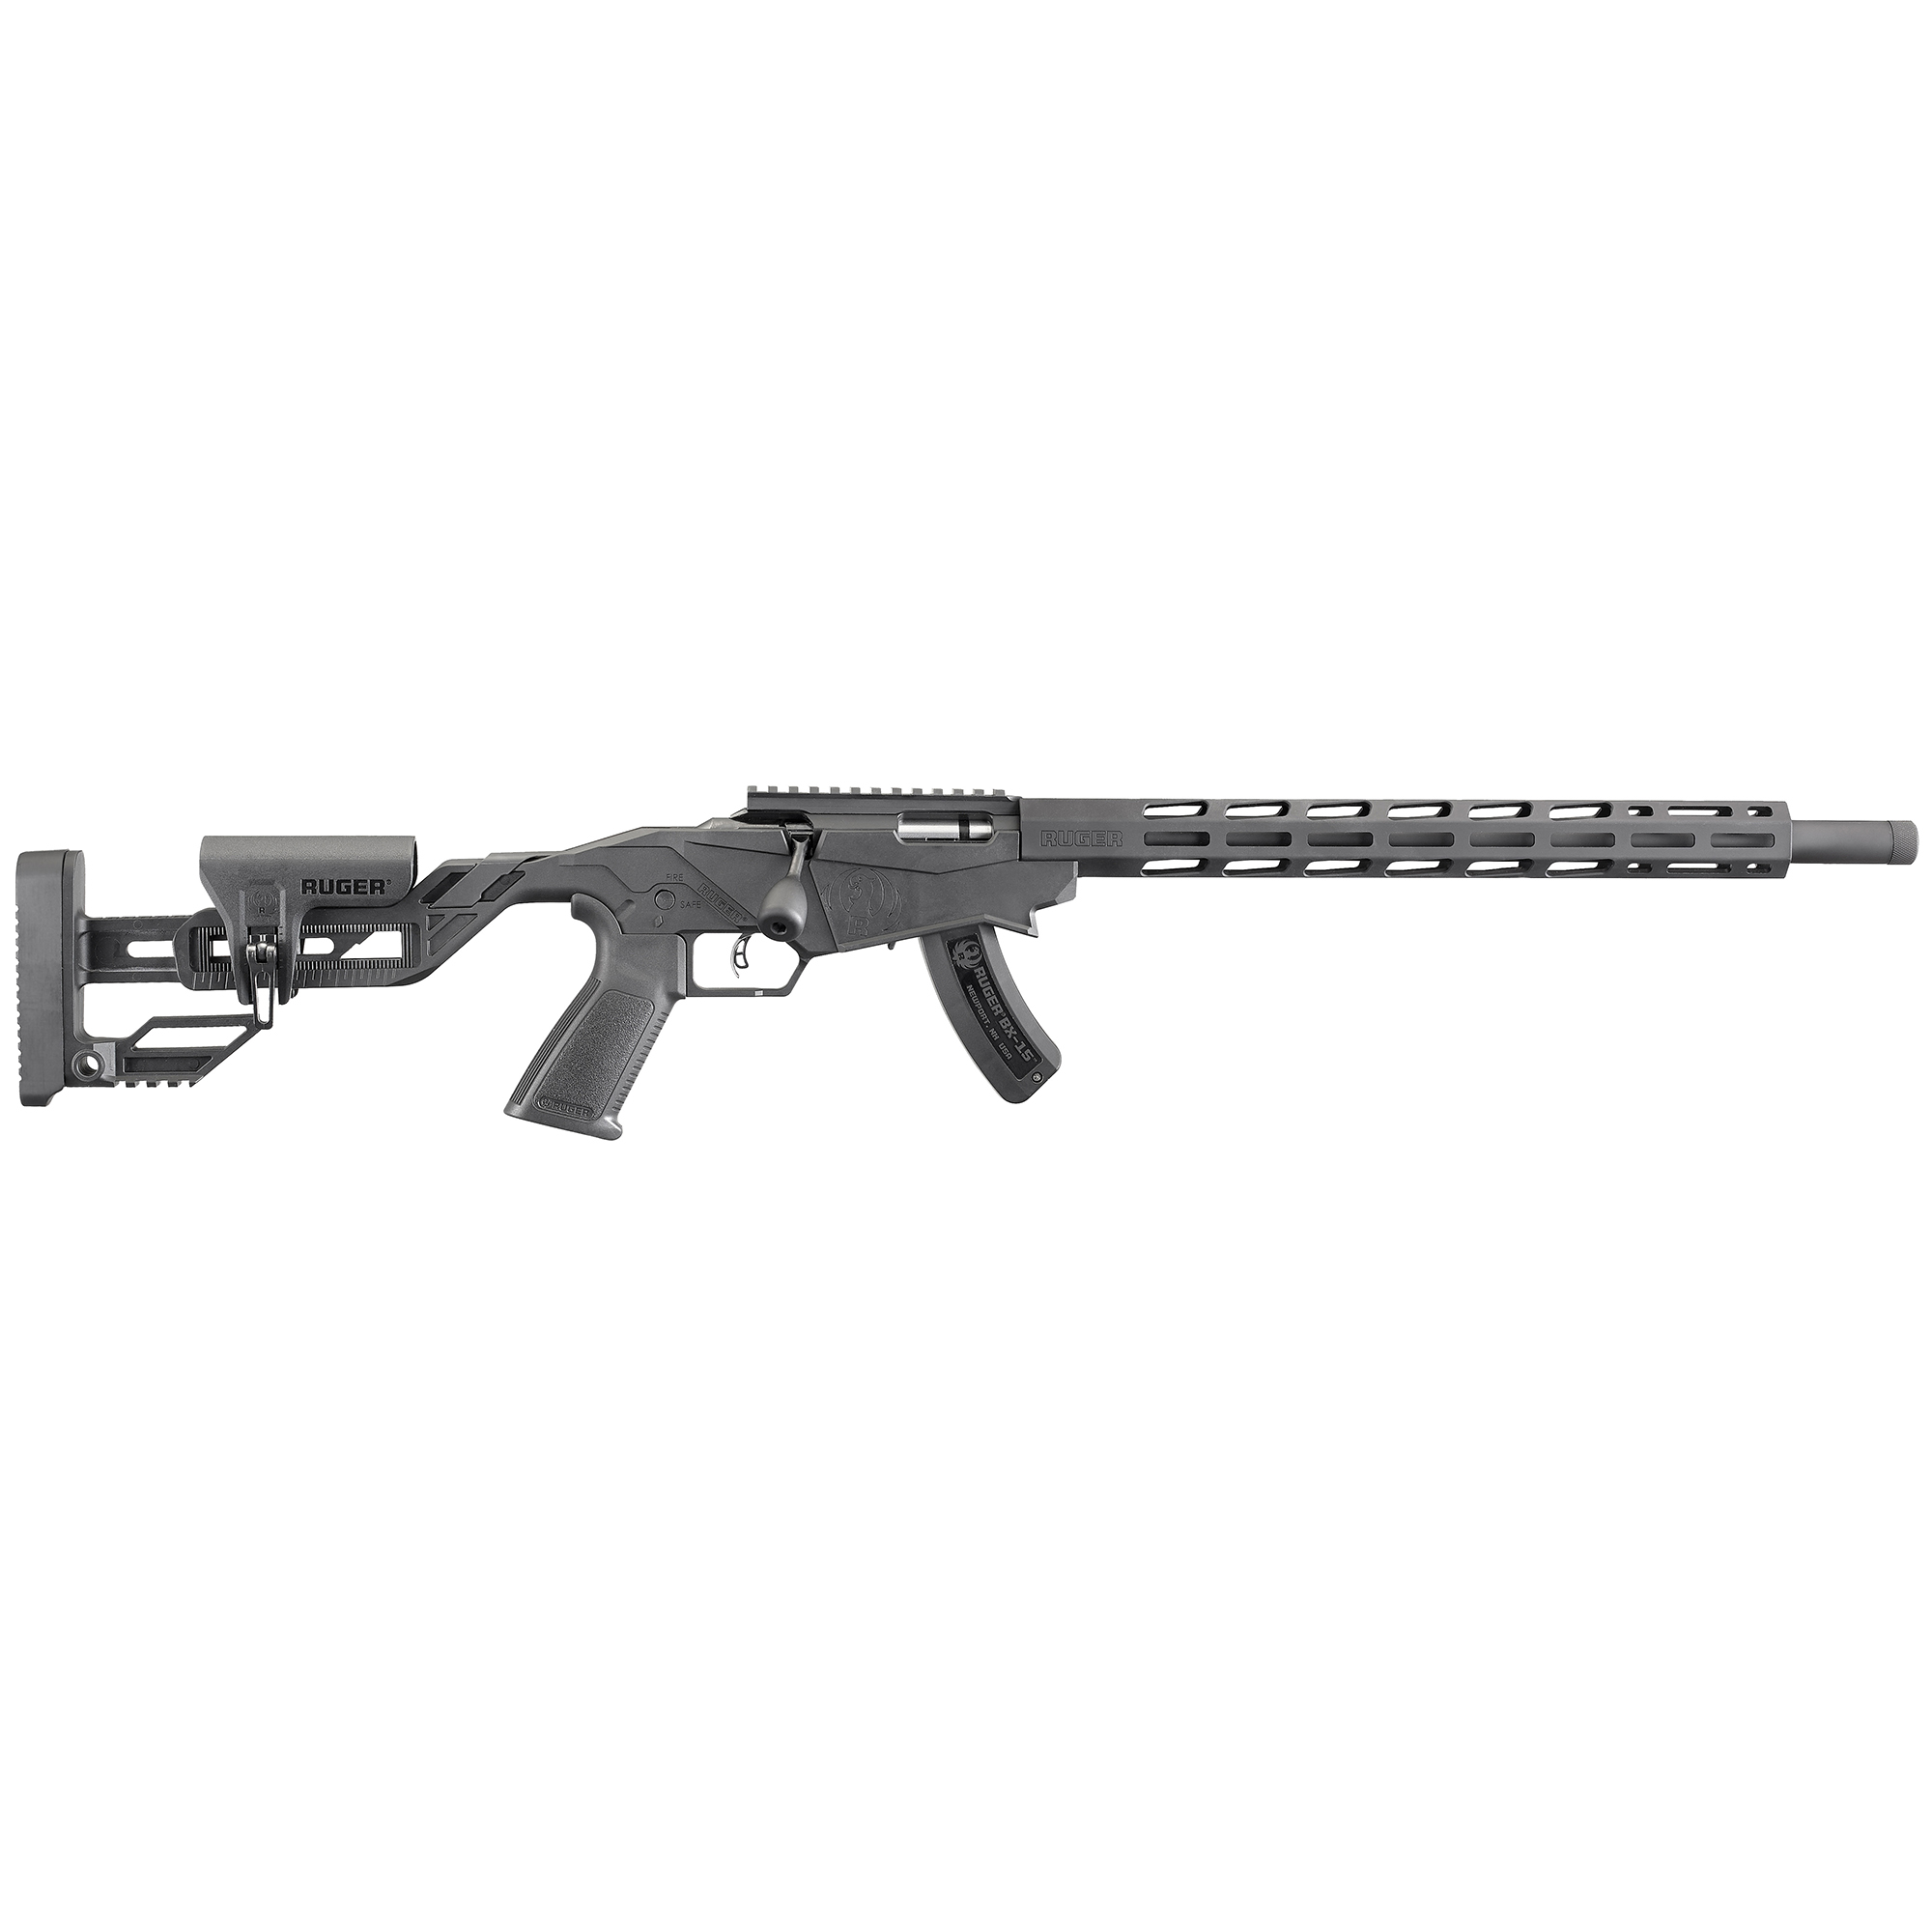 Ruger Precision Rimfire Rifle, 15 Rd. thumbnail